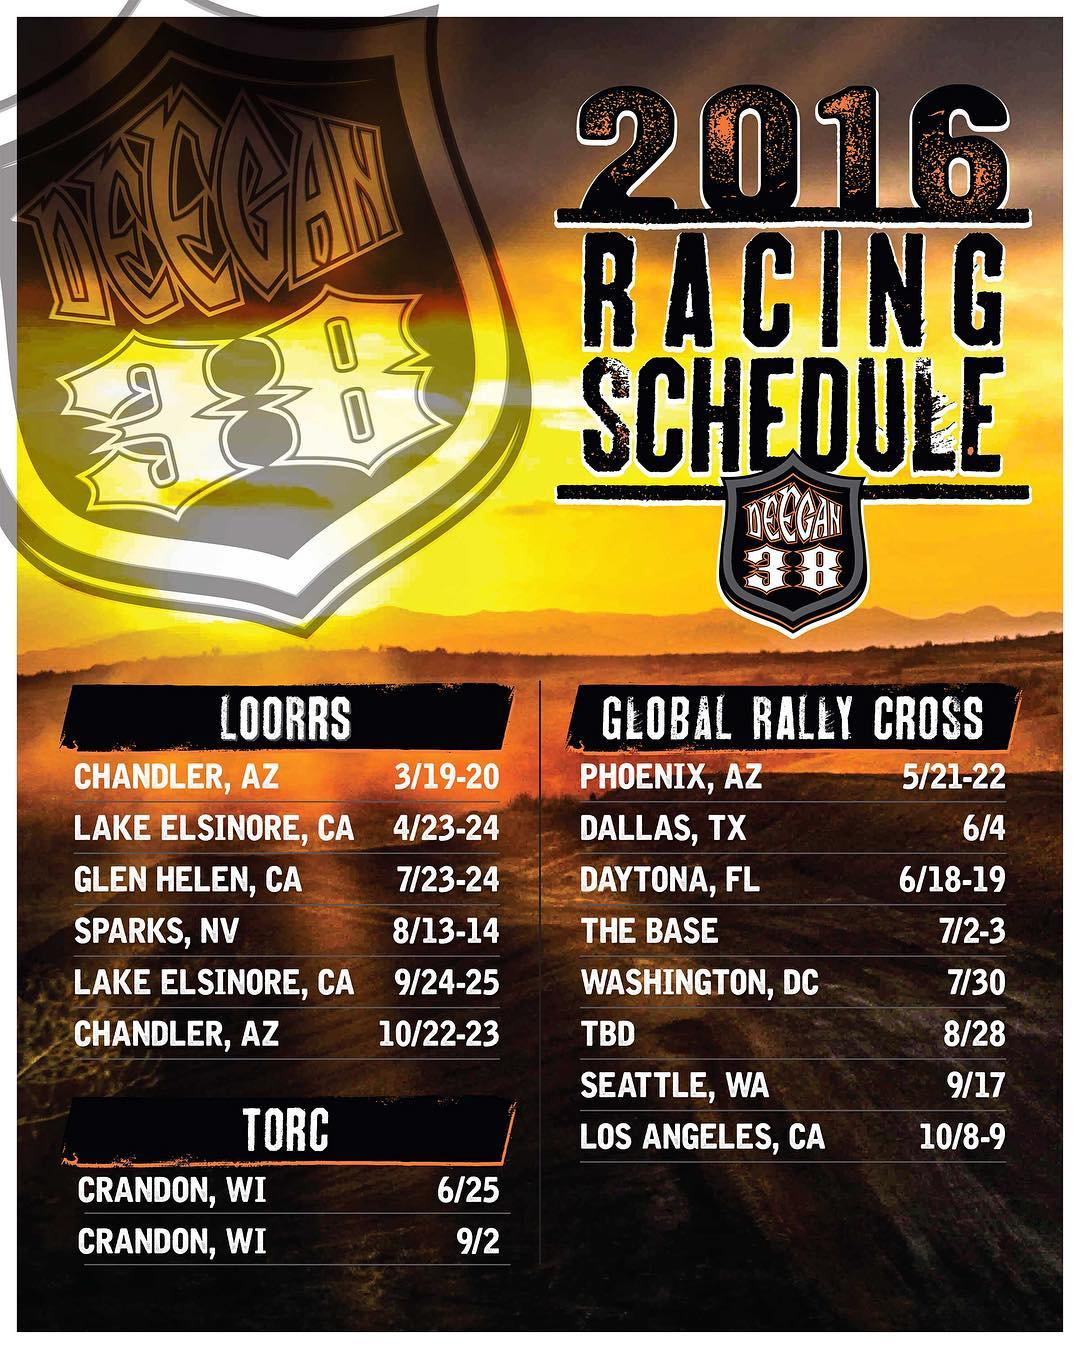 Big announcement! Have a lot of racing this year! Both #offroad and #grc